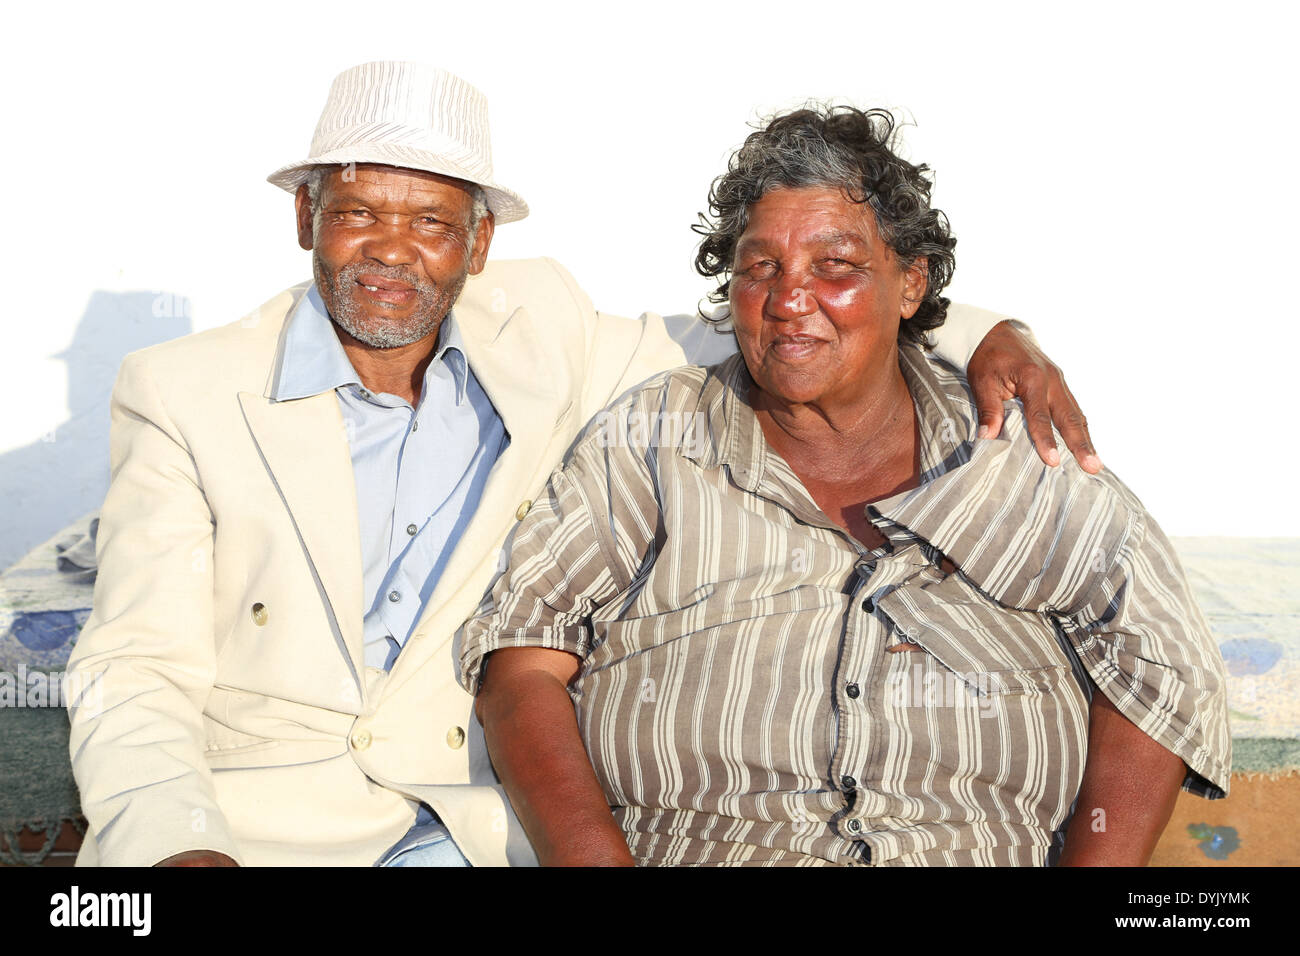 HOMELESS ELDERLY MIXED RACE COUPLE CAPE TOWN - Stock Image